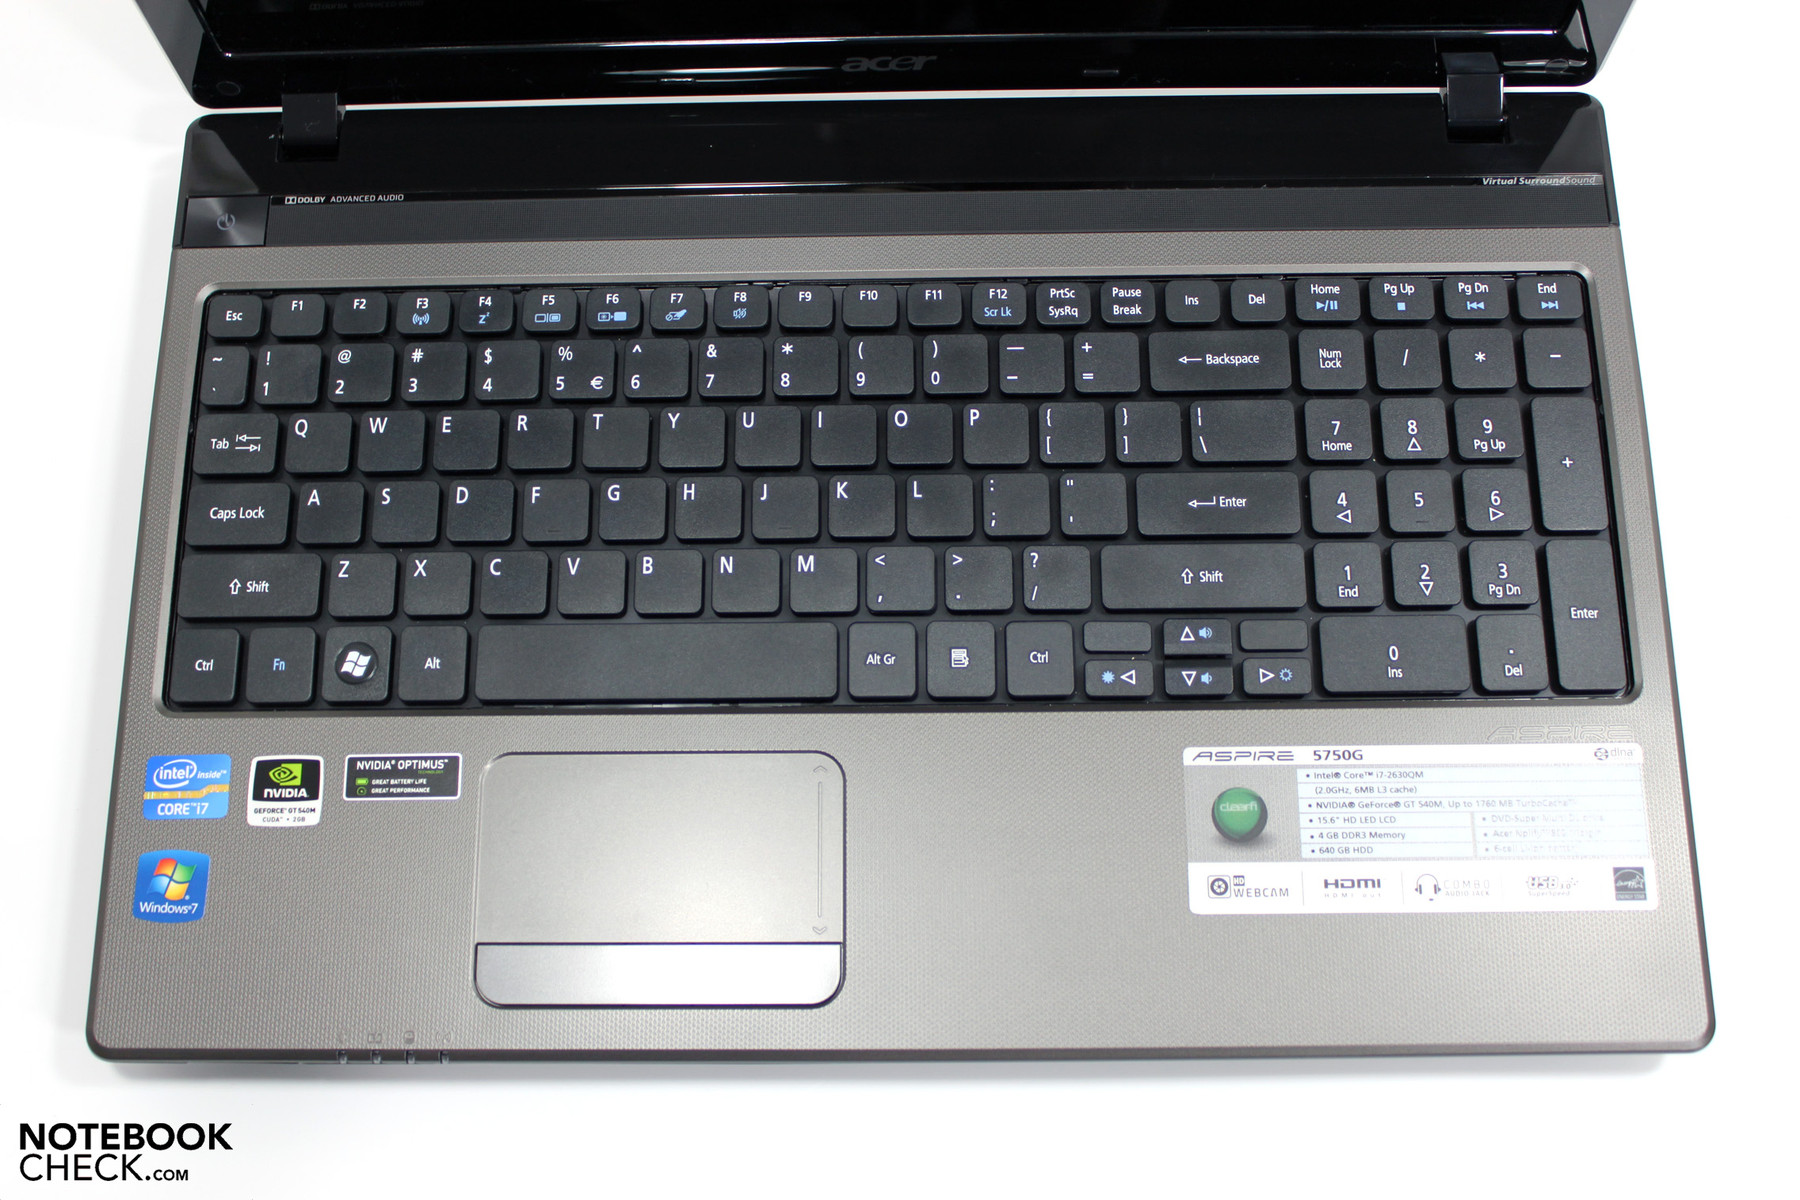 Acer Aspire 7740 Notebook Broadcom Bluetooth Drivers Mac